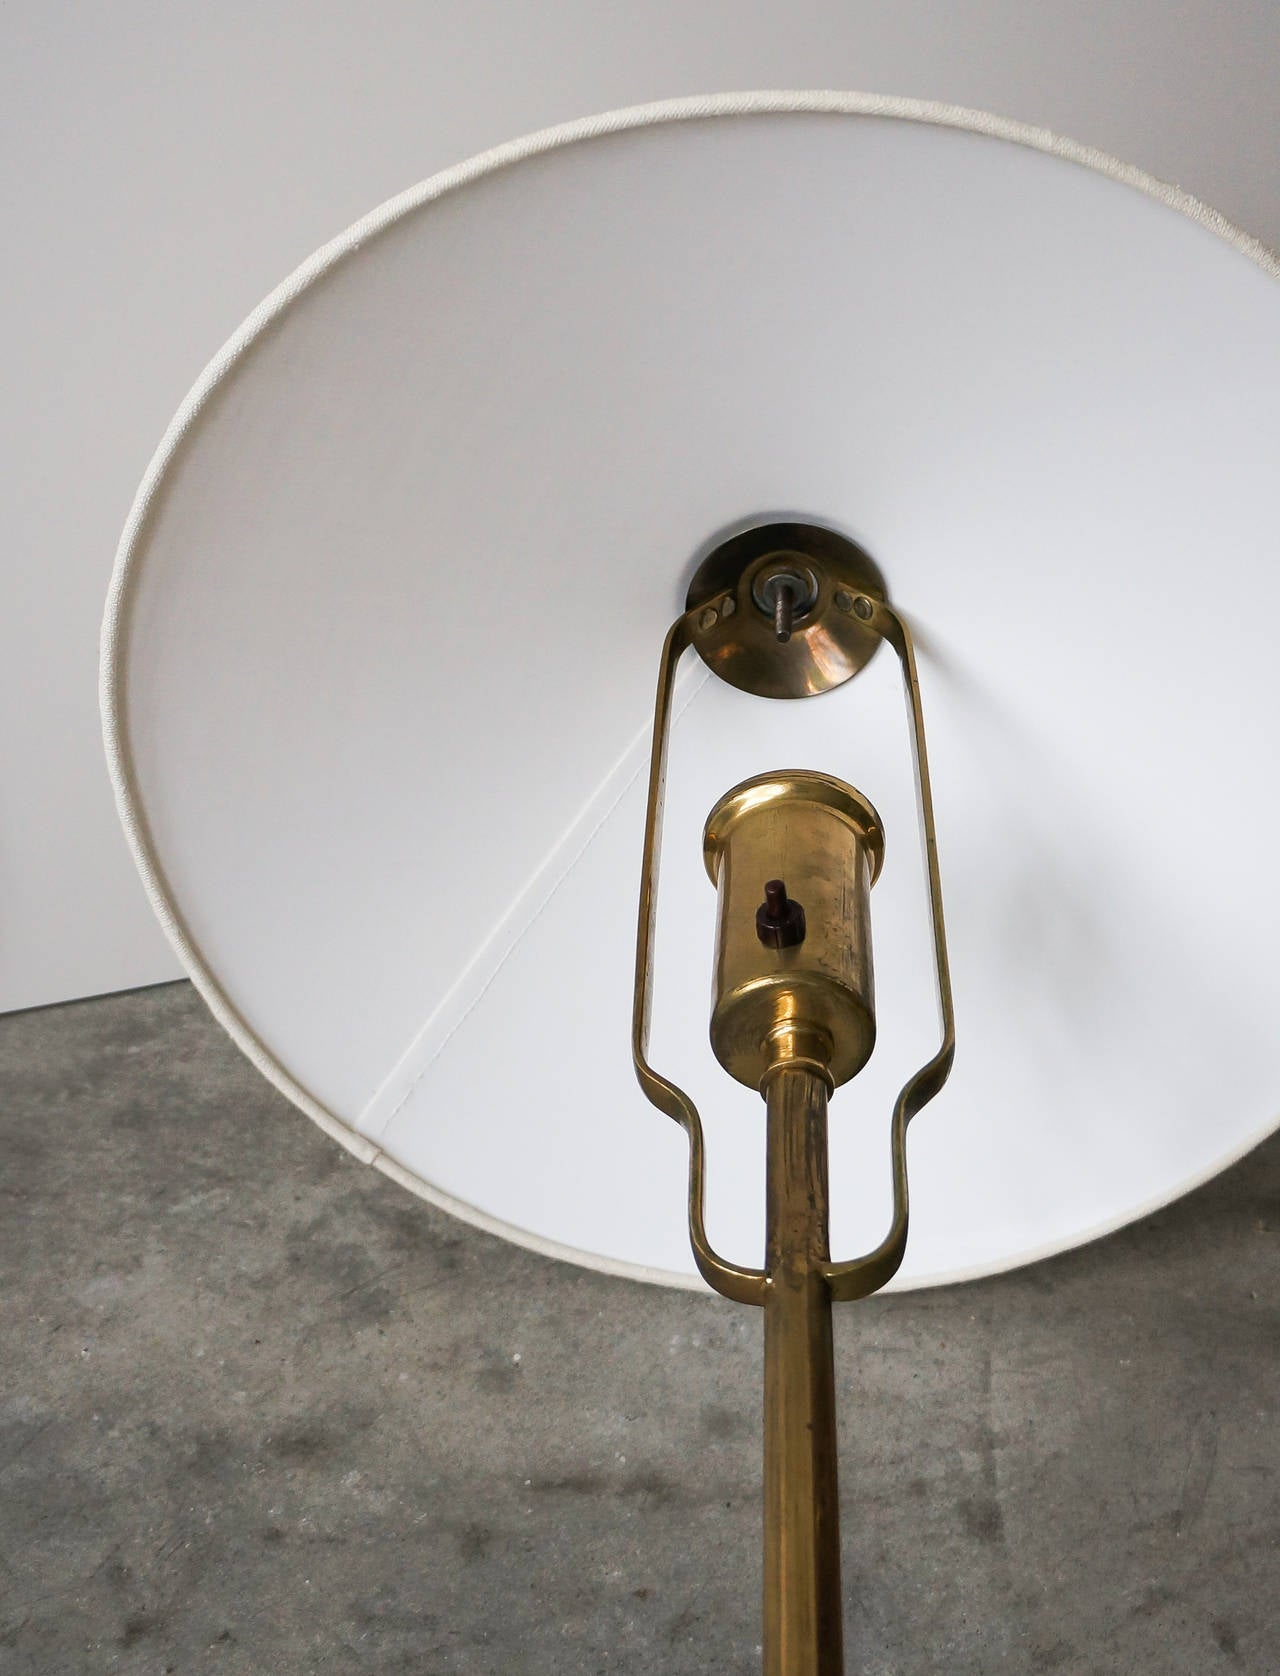 Mid-20th Century Paavo Tynell Floor Lamp, Model 5762 Manufactured by Taito Oy, Finland For Sale